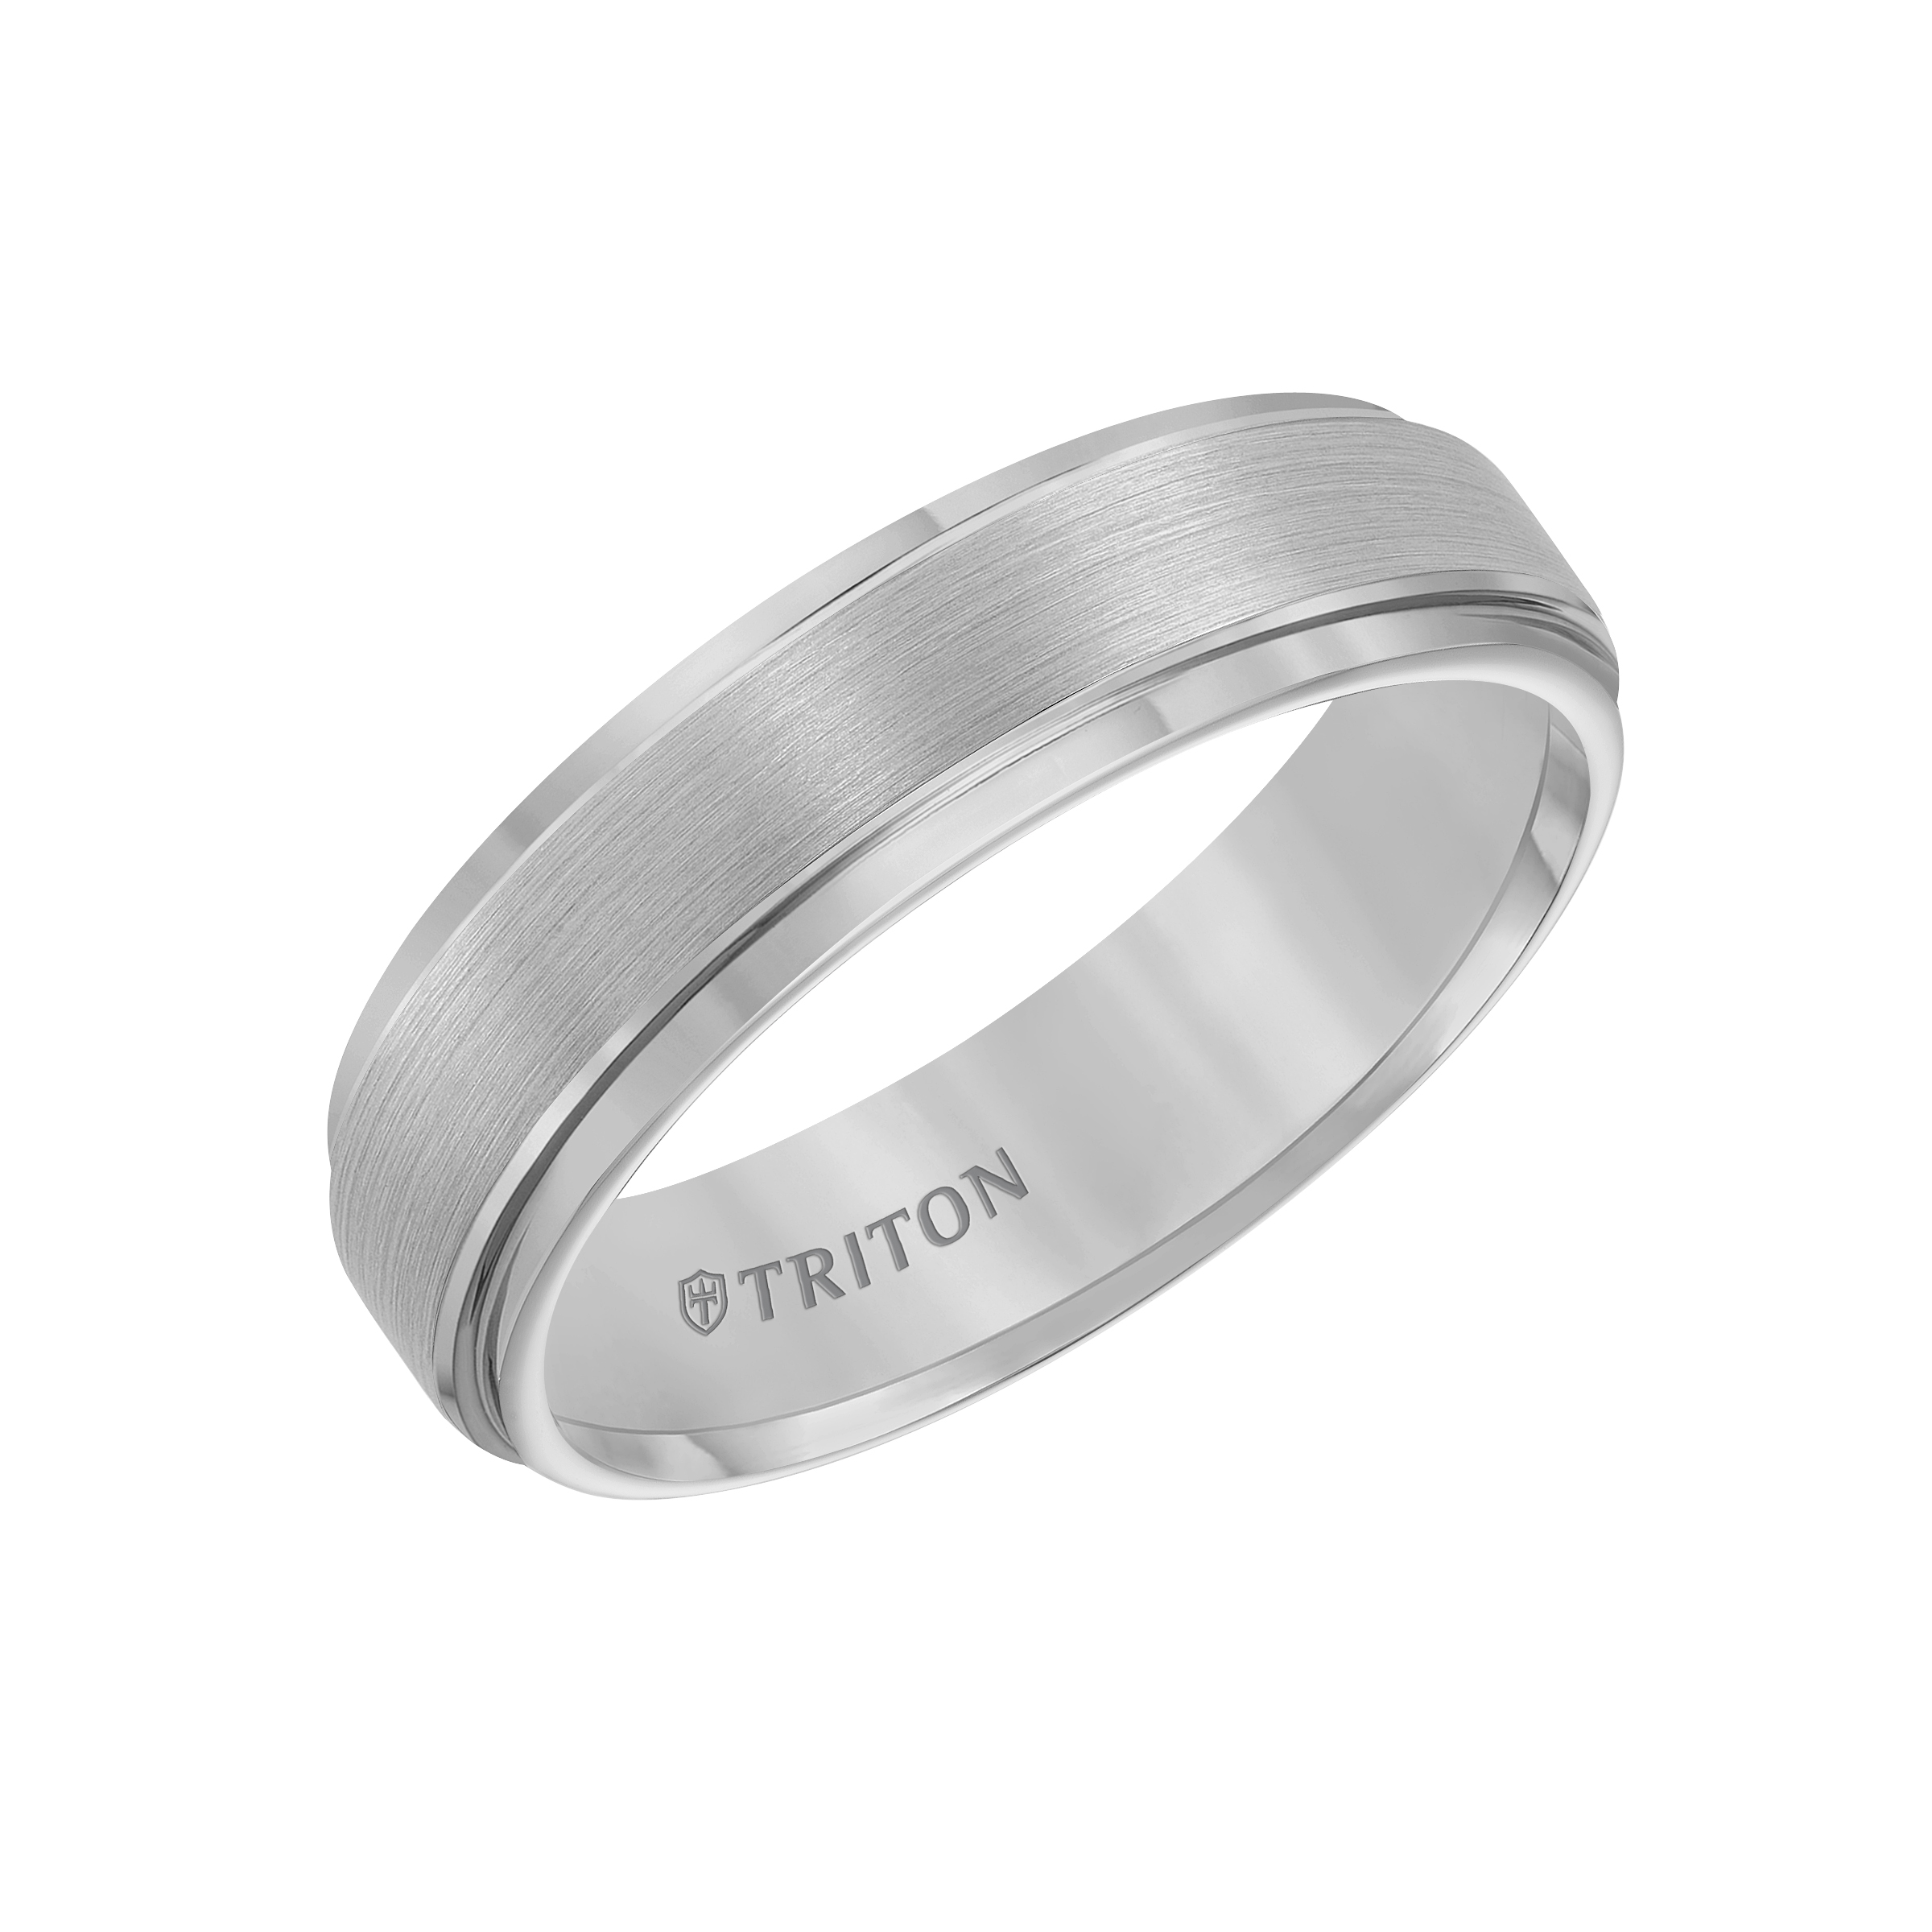 This is an image of Triton Wedding Bands Wedding Bands Highlands Ranch, Denver